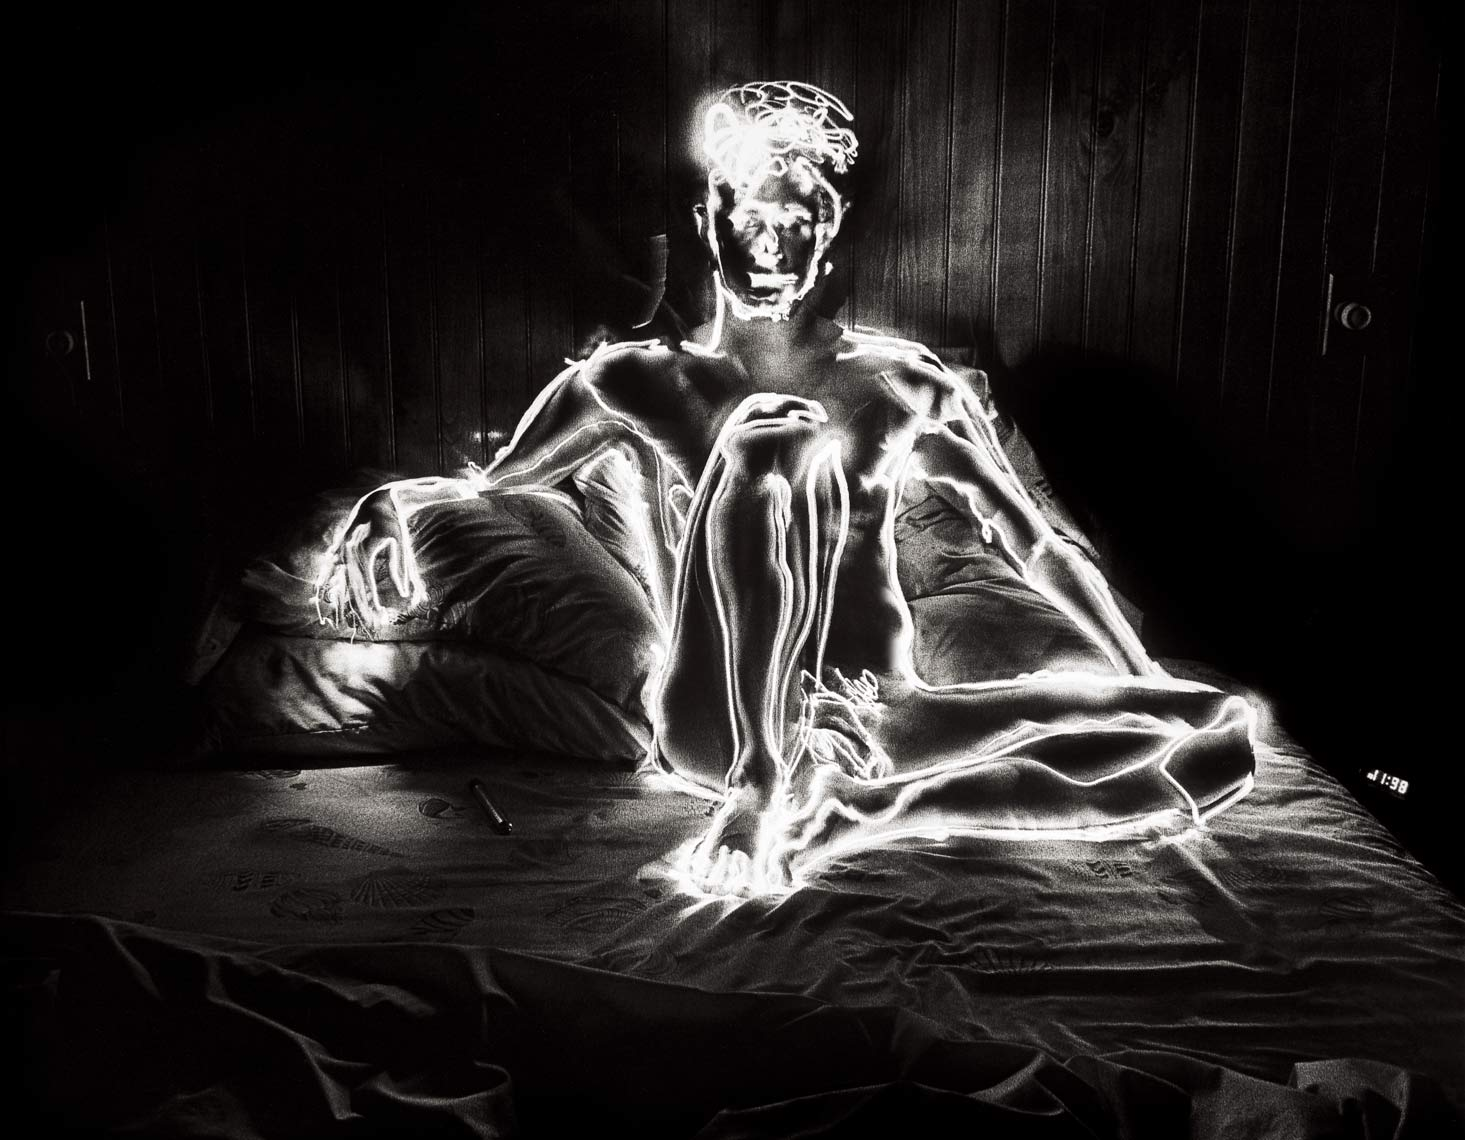 David Lebe; Self 11:98,1981, male nude, light drawing, black and white photograph